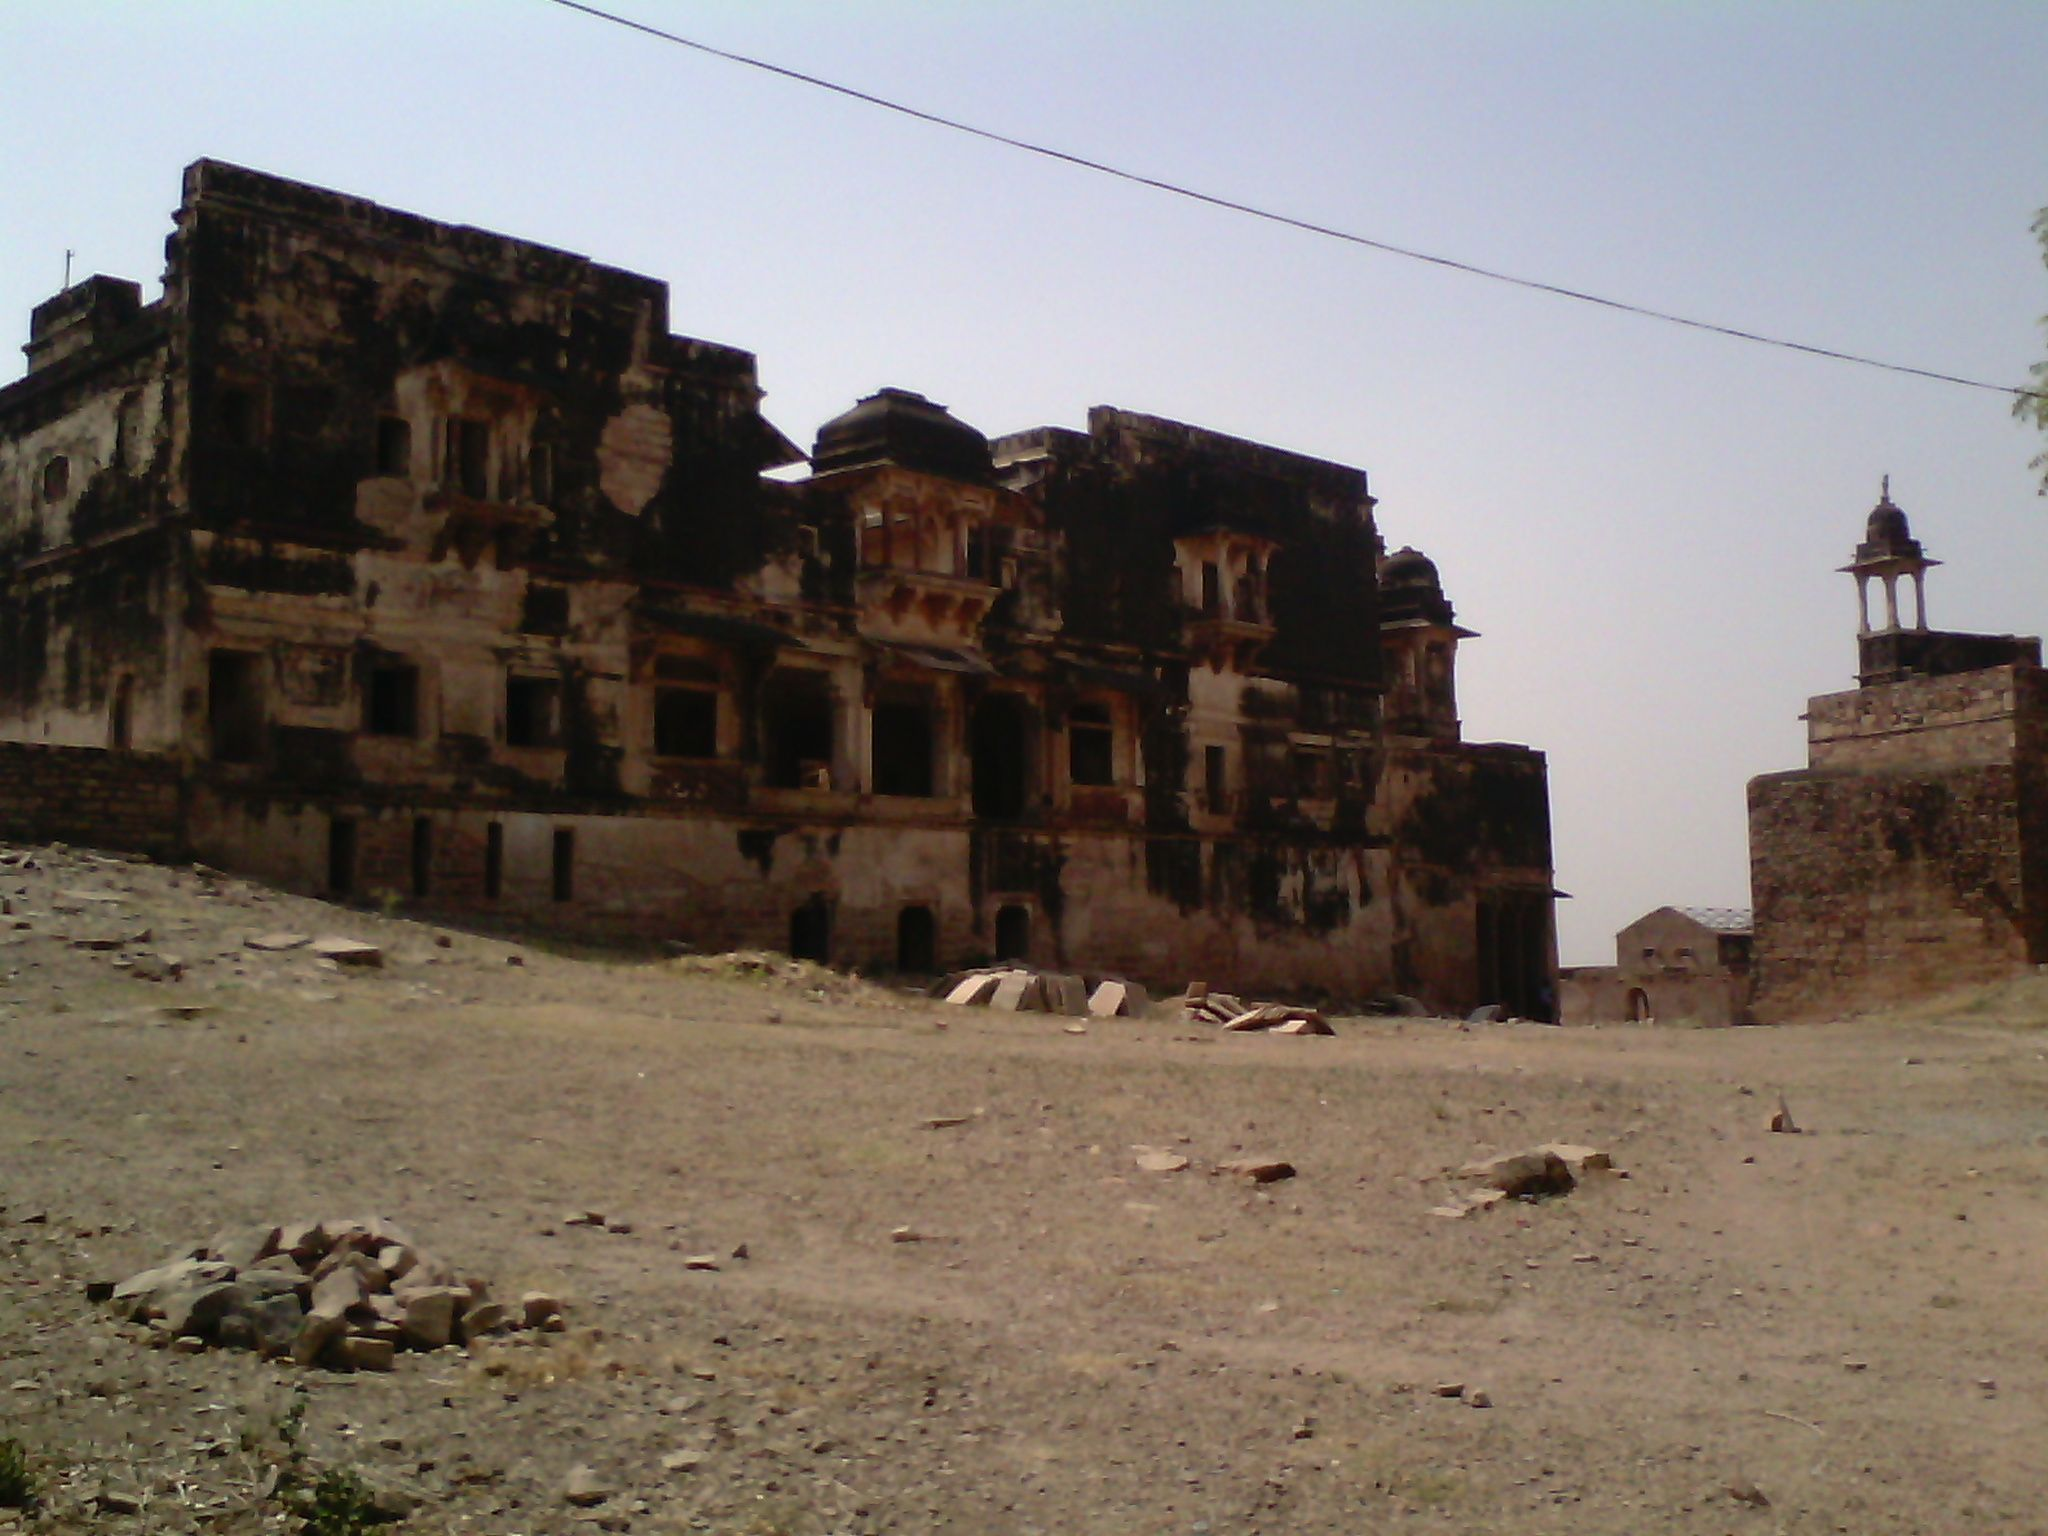 The Old Ruins Of The Great Mughal Empire In Gwalior